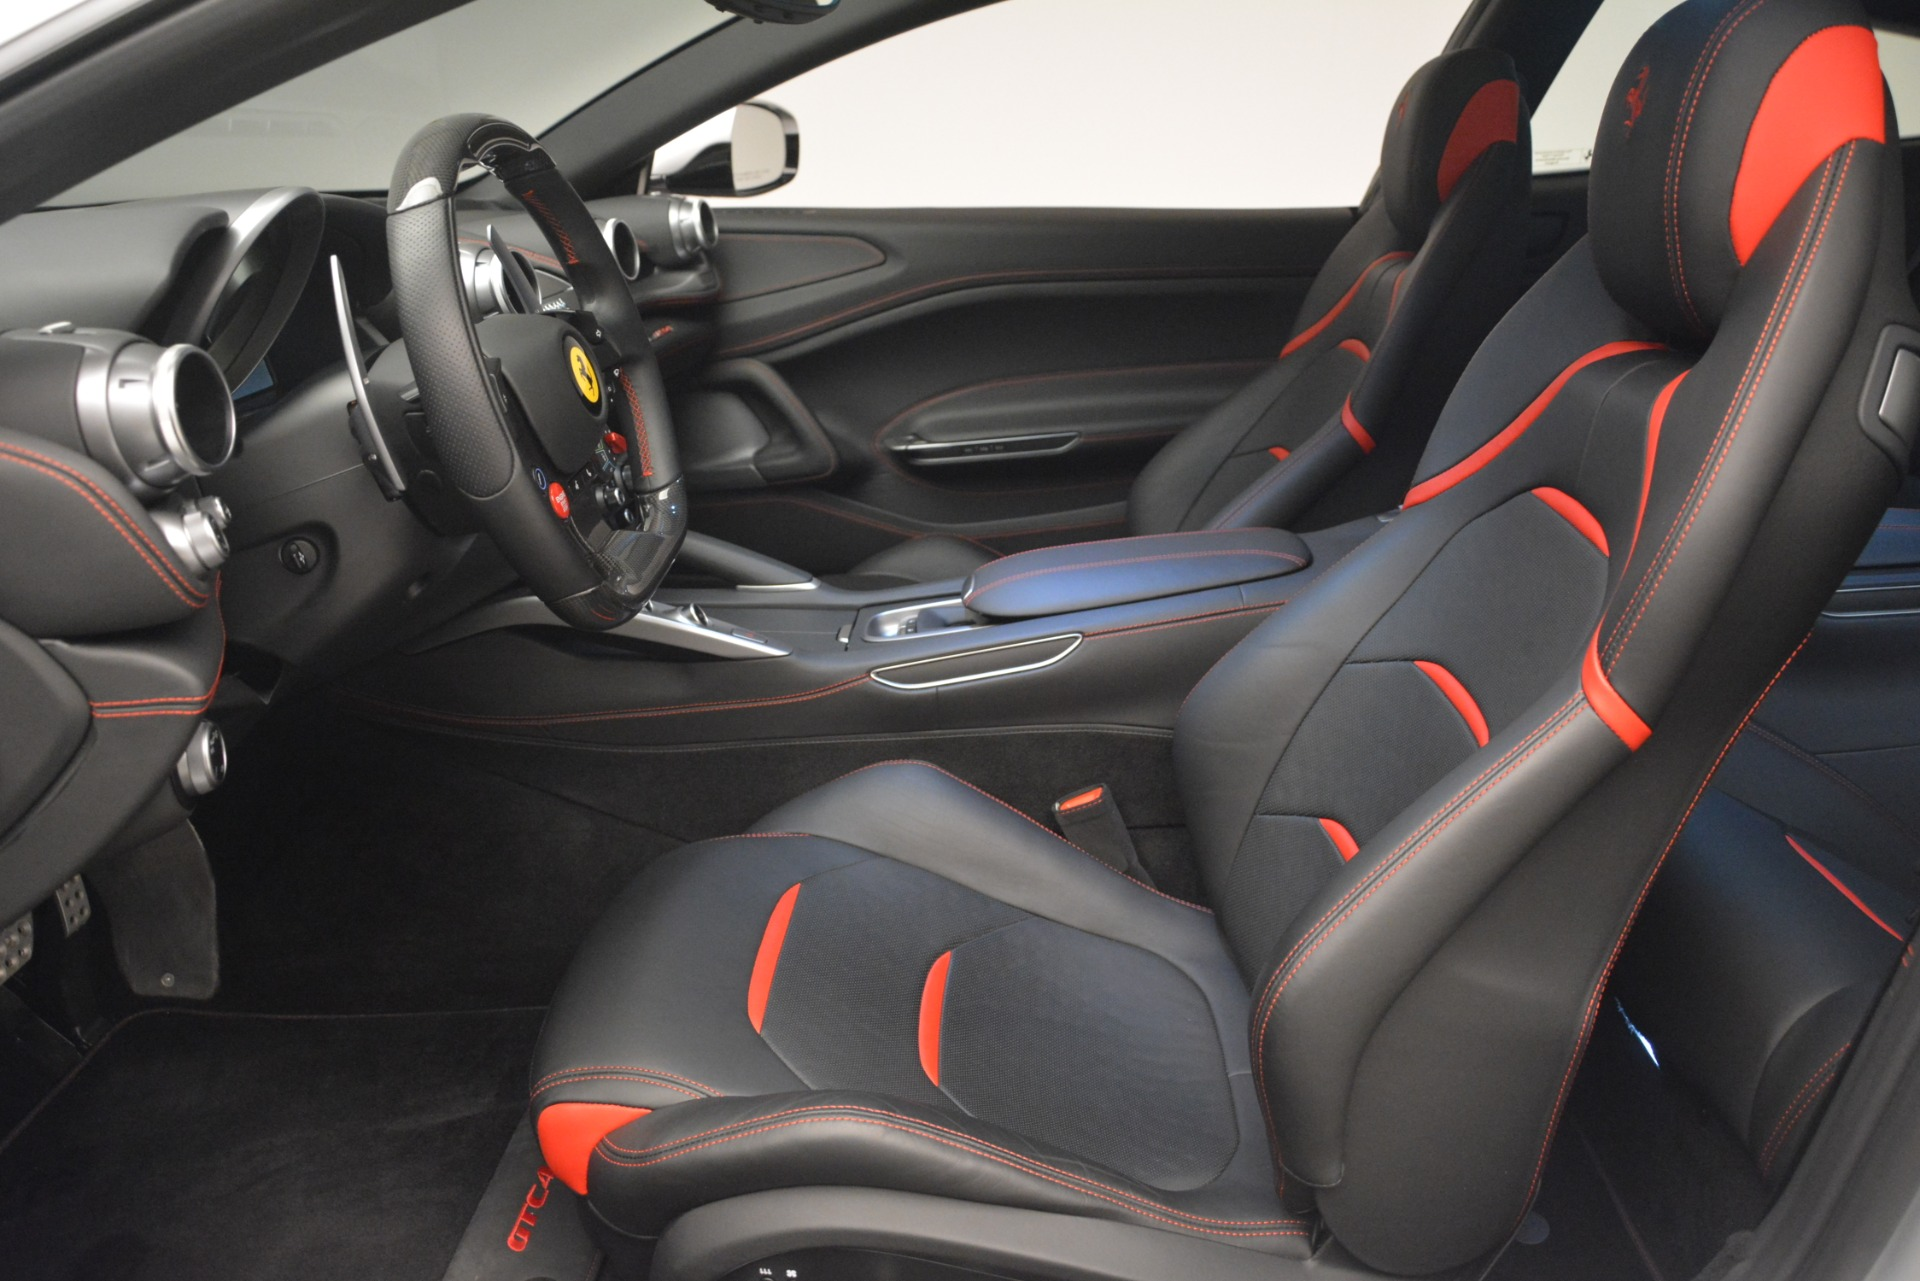 Used 2018 Ferrari GTC4LussoT V8 For Sale In Greenwich, CT 3031_p14